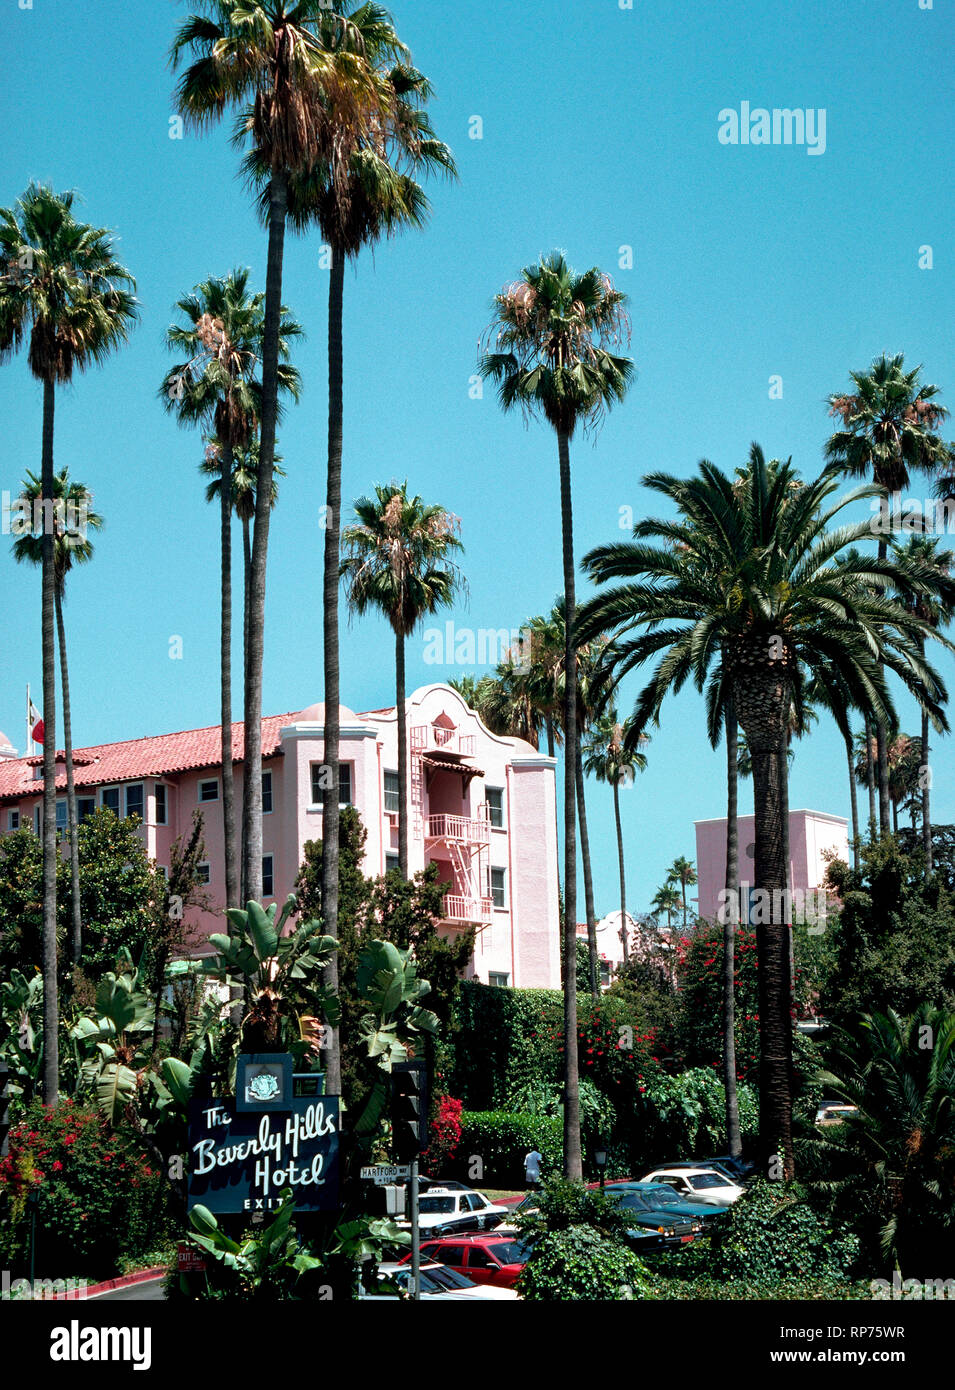 Towering palm trees frame some of the pink facade of the famous Beverly Hills Hotel that has been the home away from home for movie stars and other celebrities since it opened in 1912, which was two years before its namesake city of Beverly Hills was incorporated in Los Angeles County, California, USA. Today the luxurious hotel is known as the Pink Palace and has 210 guest rooms and 23 secluded bungalows surrounded by 12 acres (4.86 hectares) of lush tropical gardens and exotic flowers. Hollywood stars are often seen in its premier dining spot, the Polo Lounge. - Stock Image